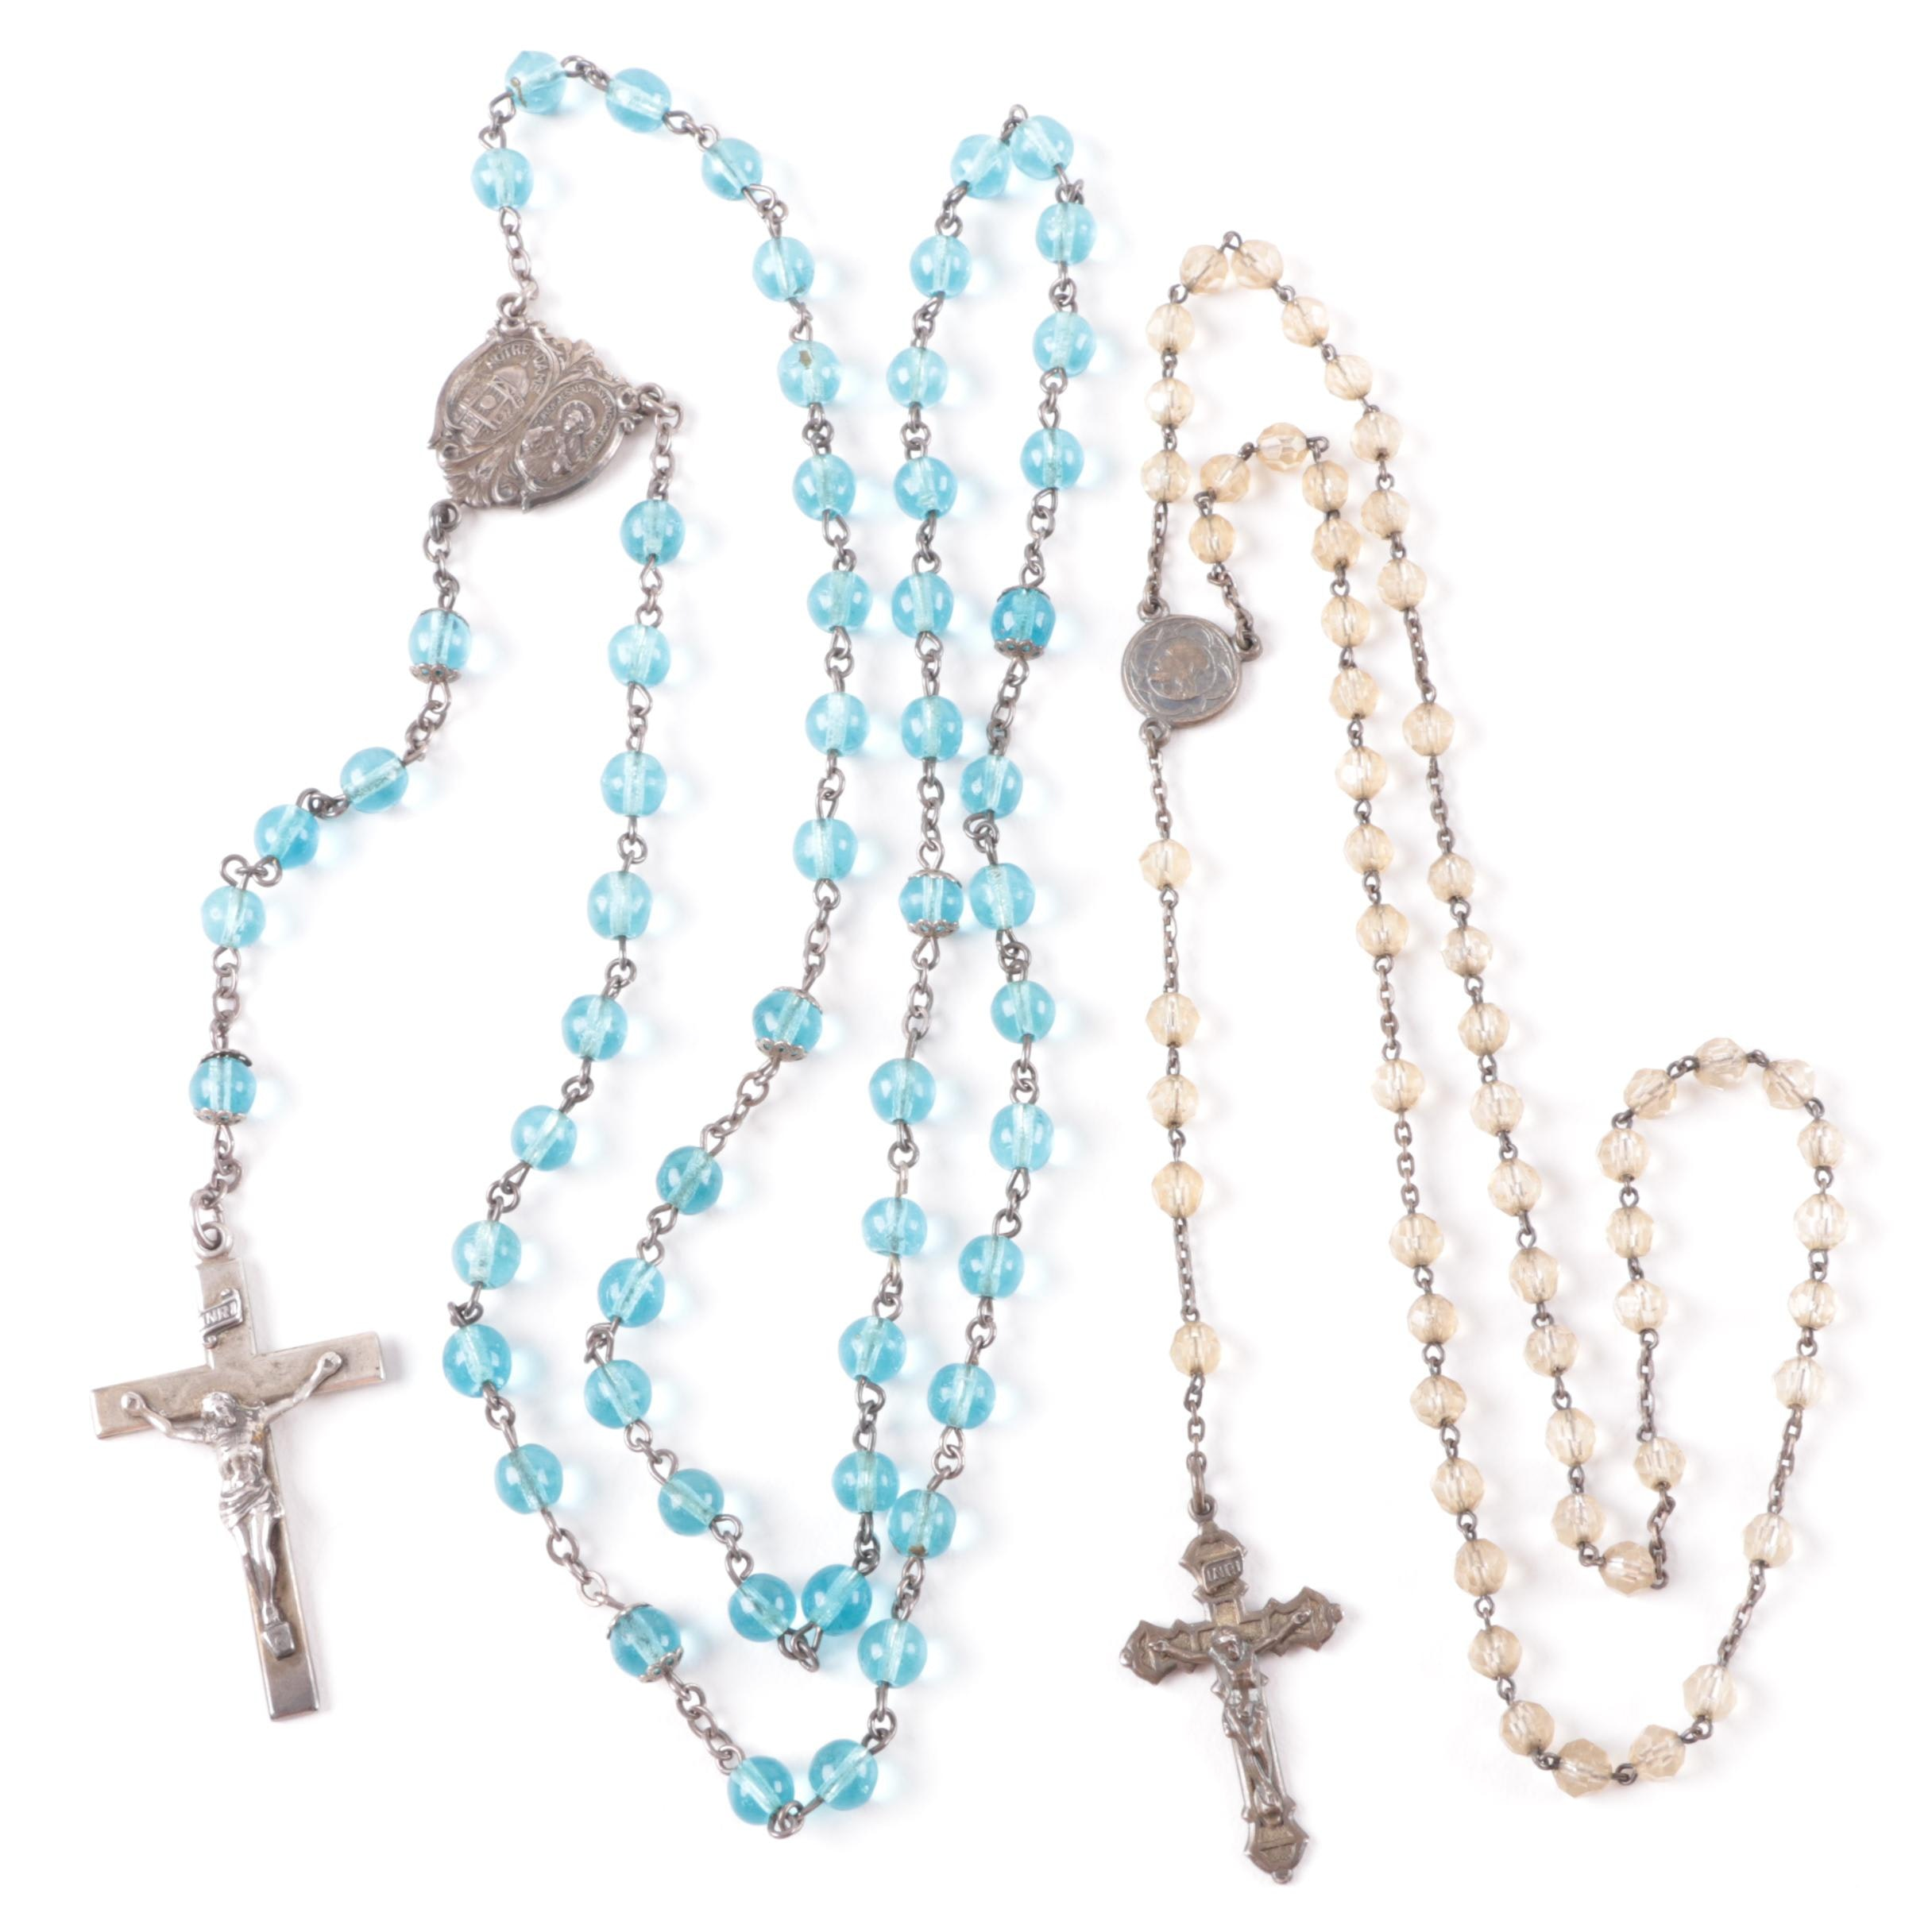 Pair of Sterling Silver and Glass Rosaries